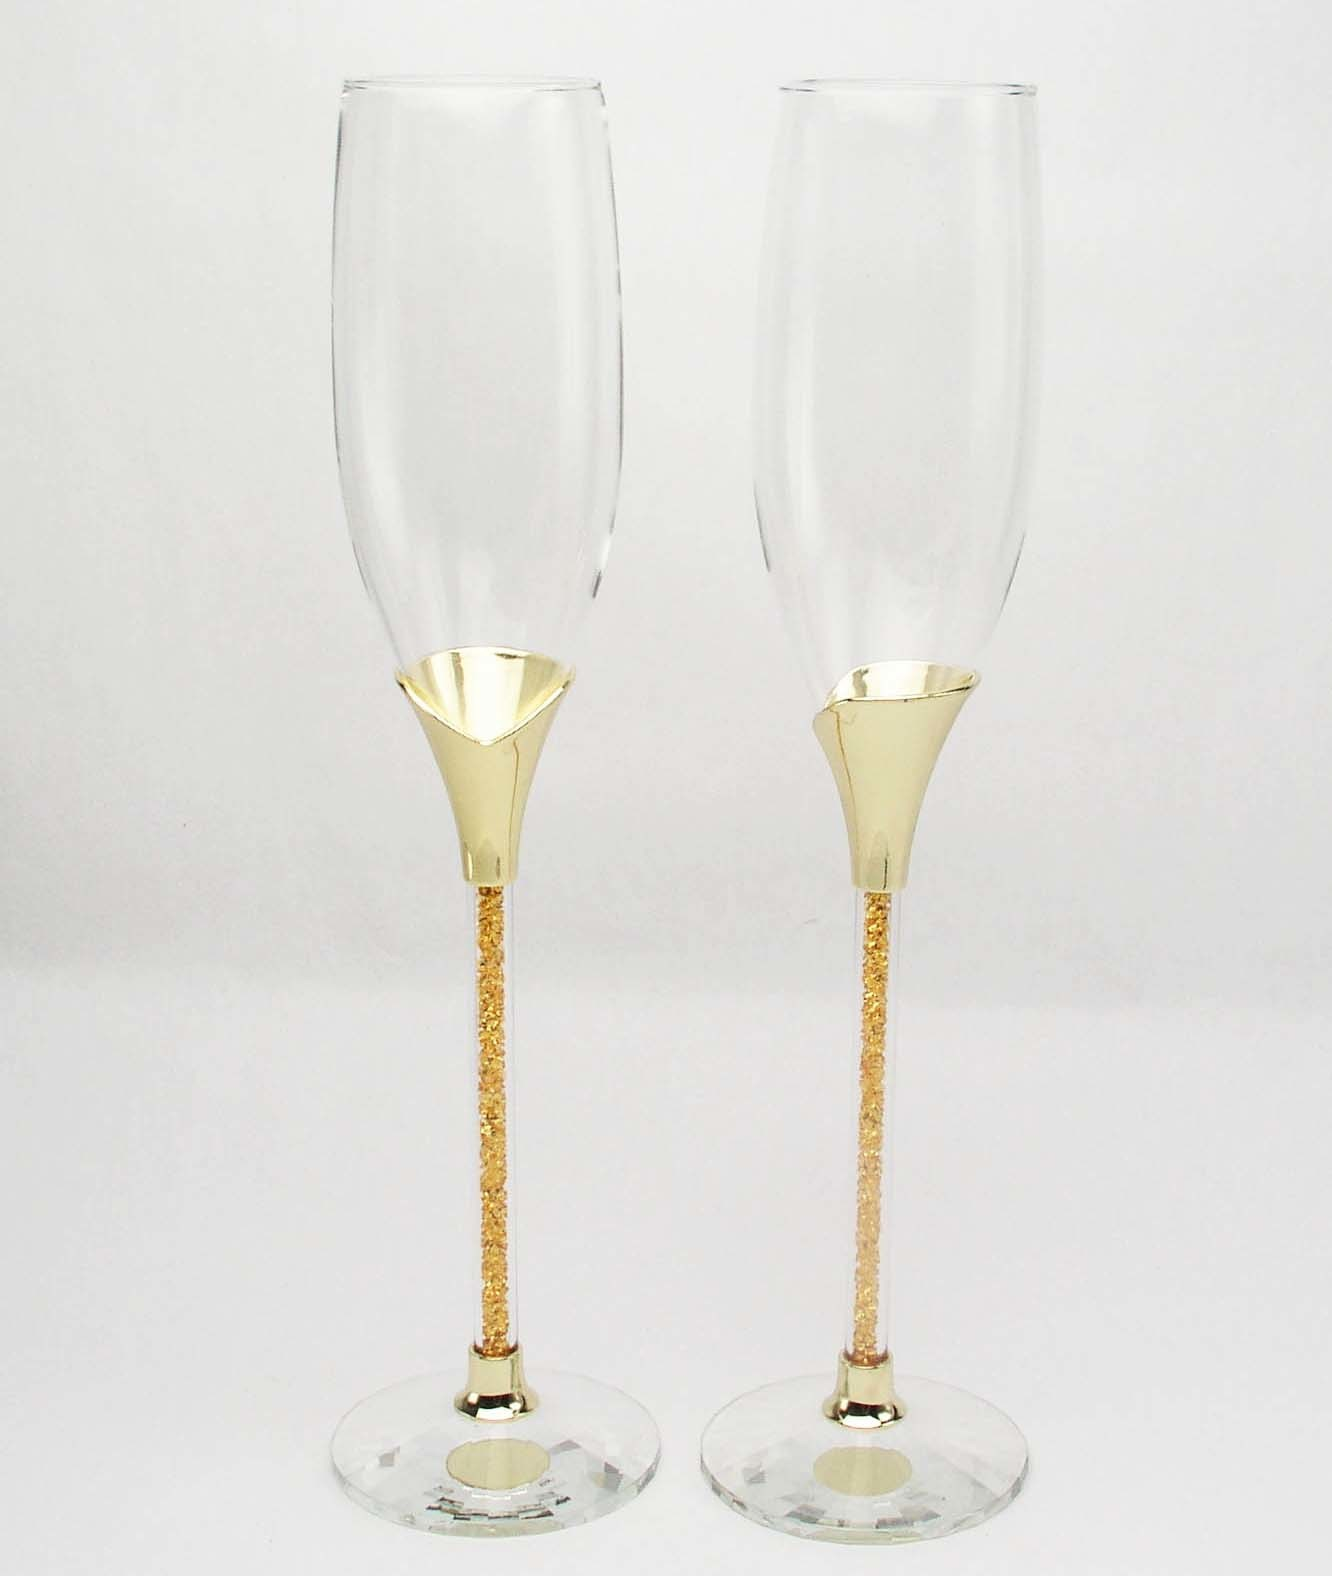 Gold Light Texture Crystal K9 Toasting Wedding Flute Goblet Wine Goblet